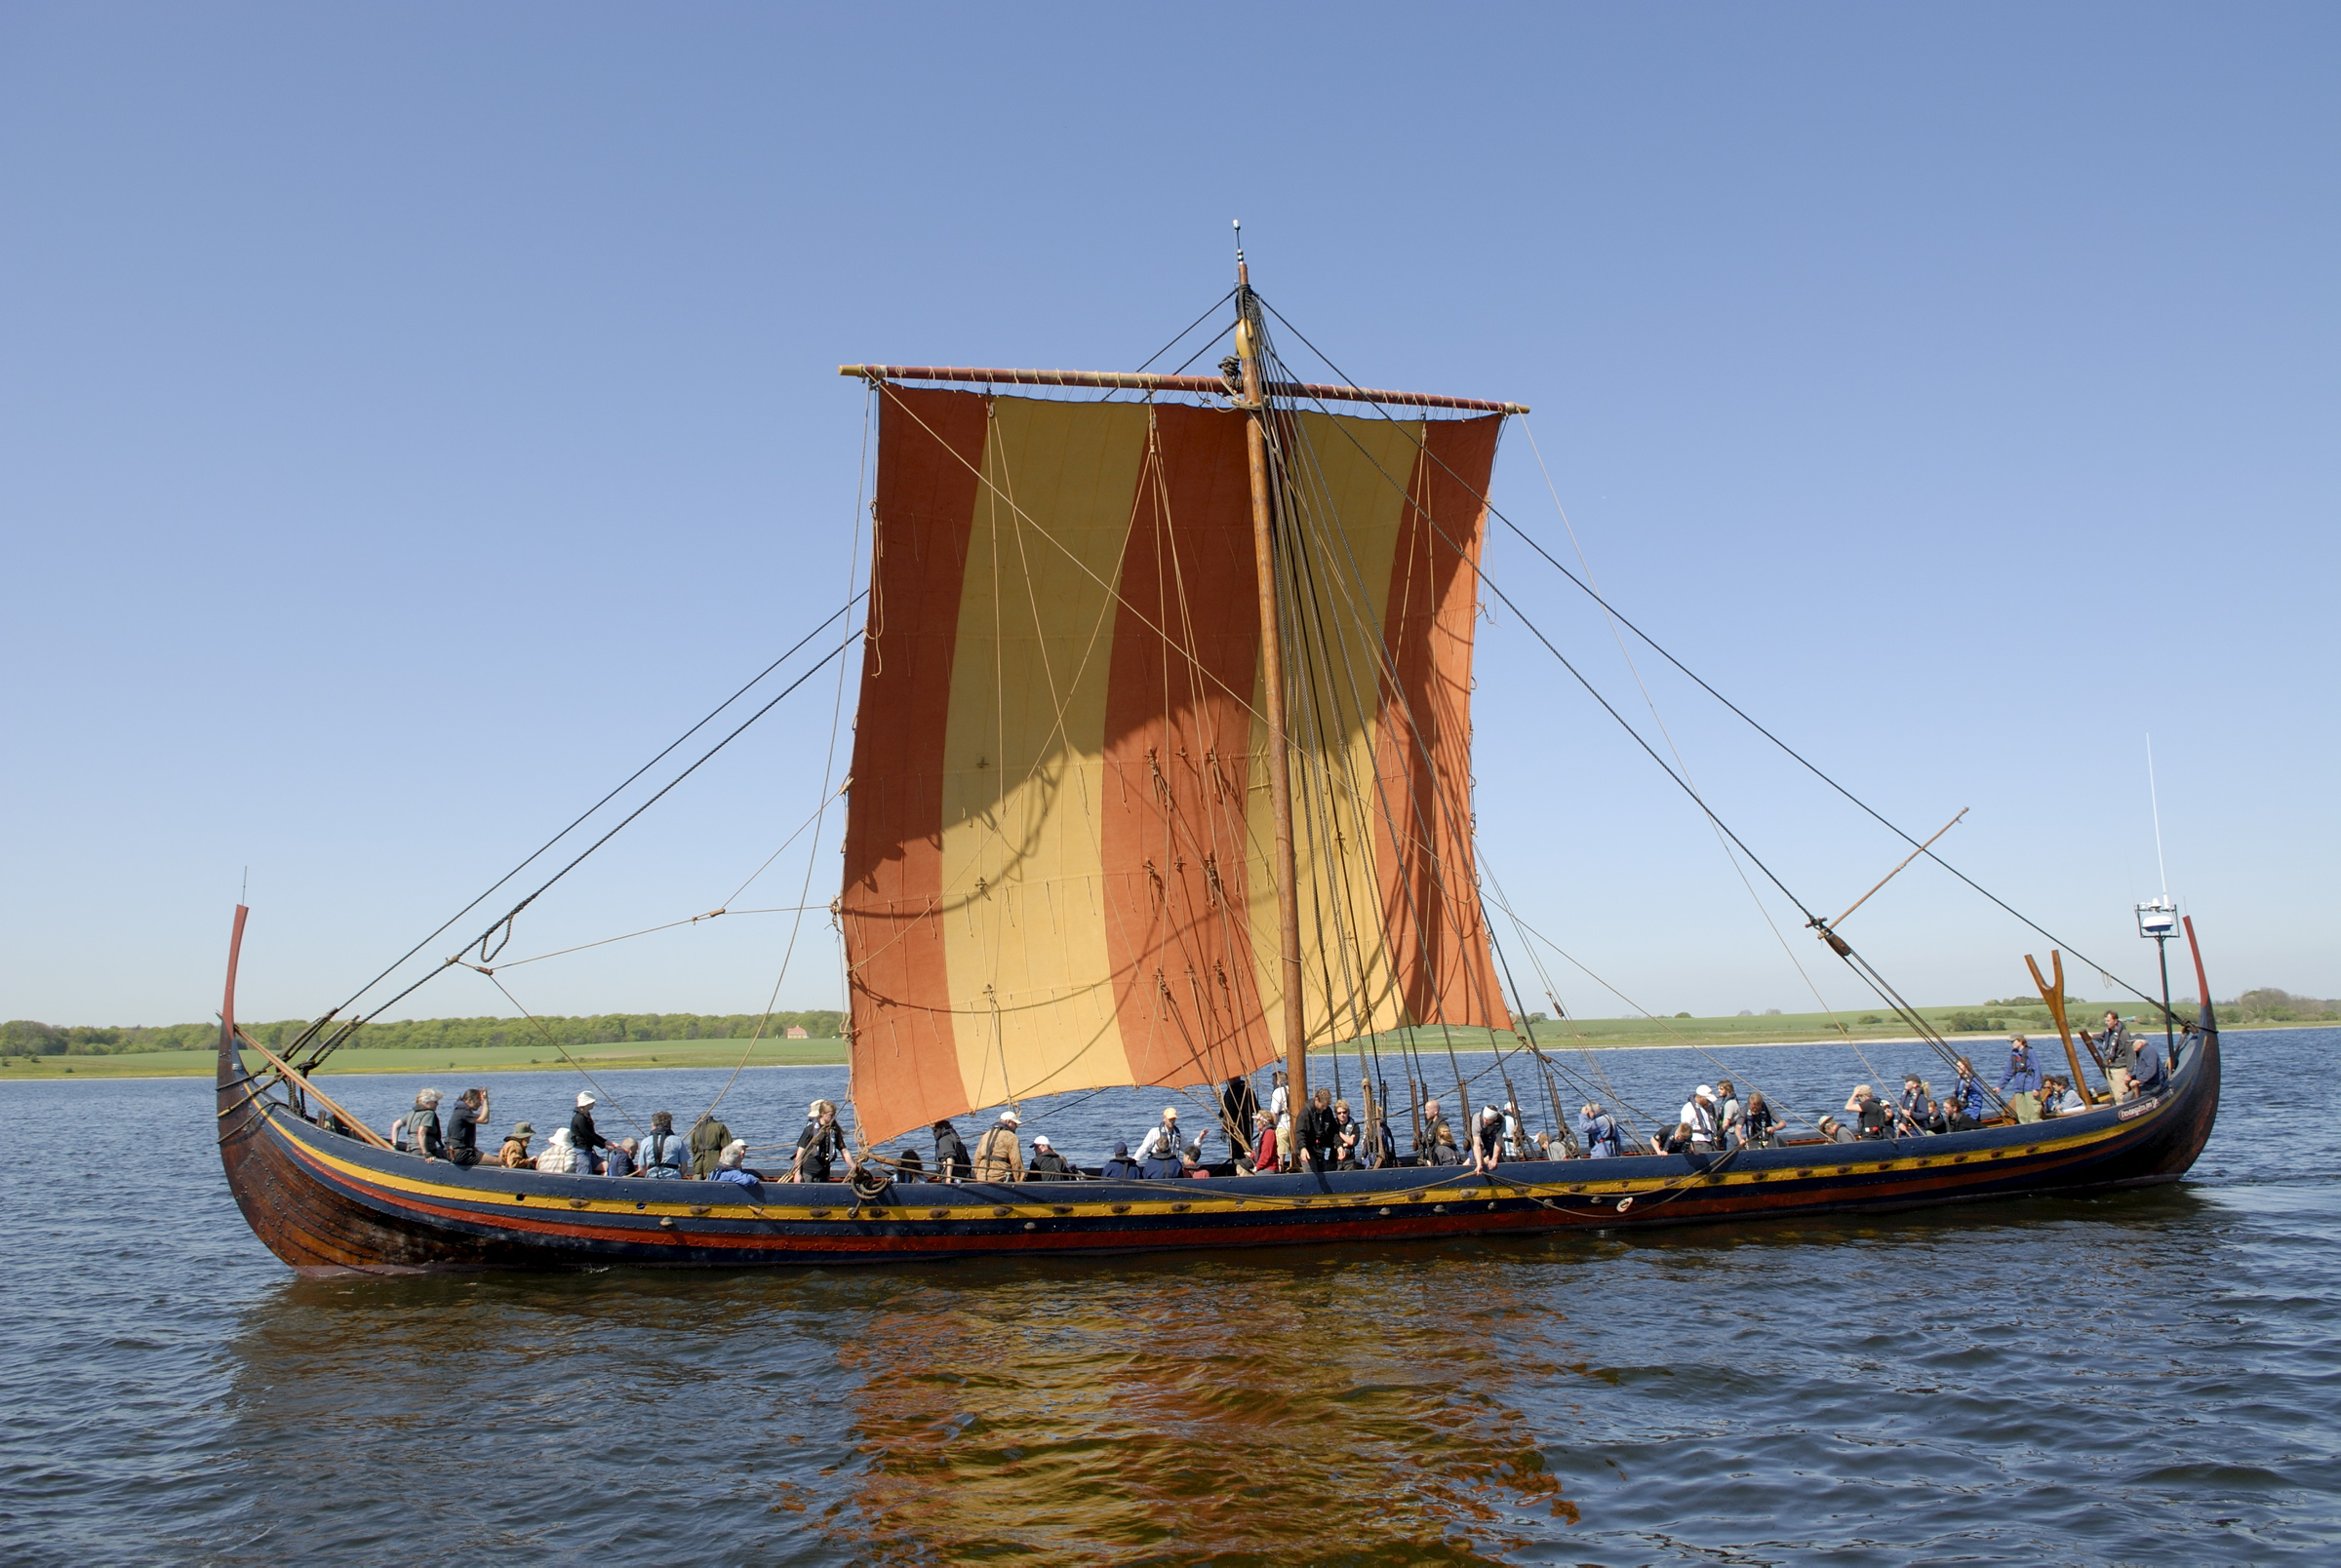 Viking Ship Wallpaper - WallpaperSafari